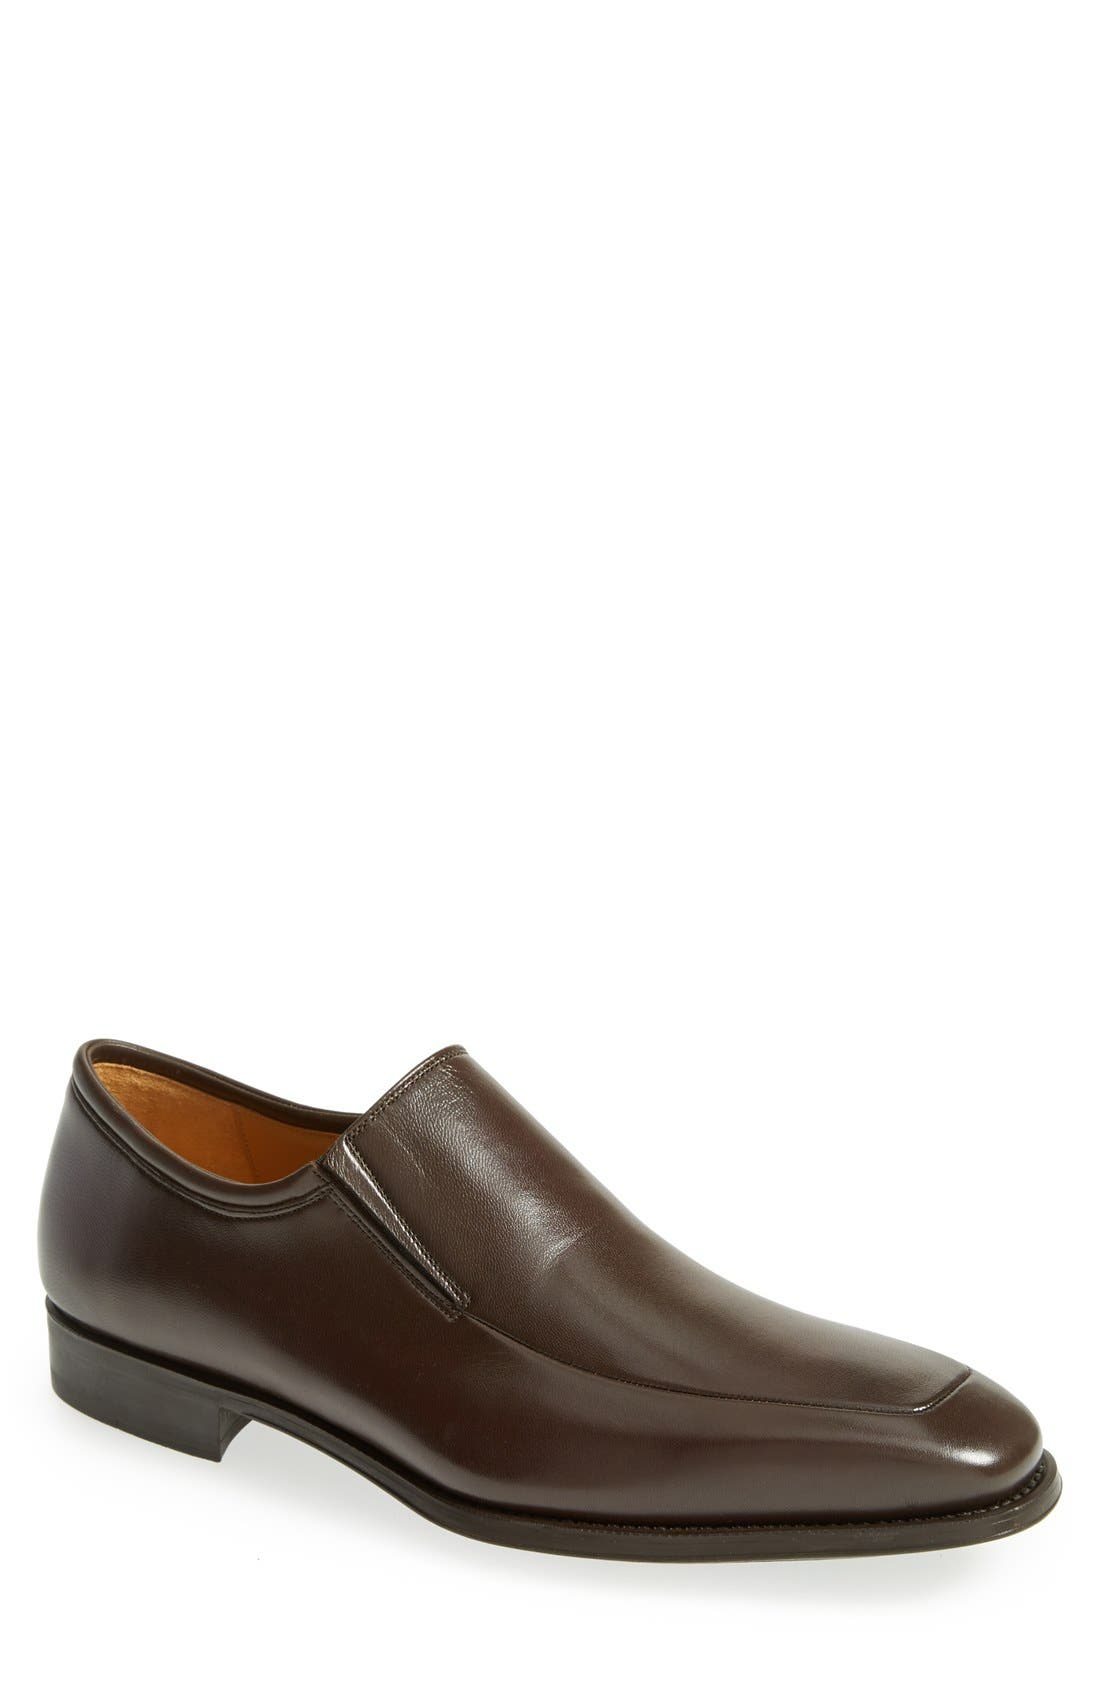 Main Image - Magnanni 'Dominguez' Slip-On